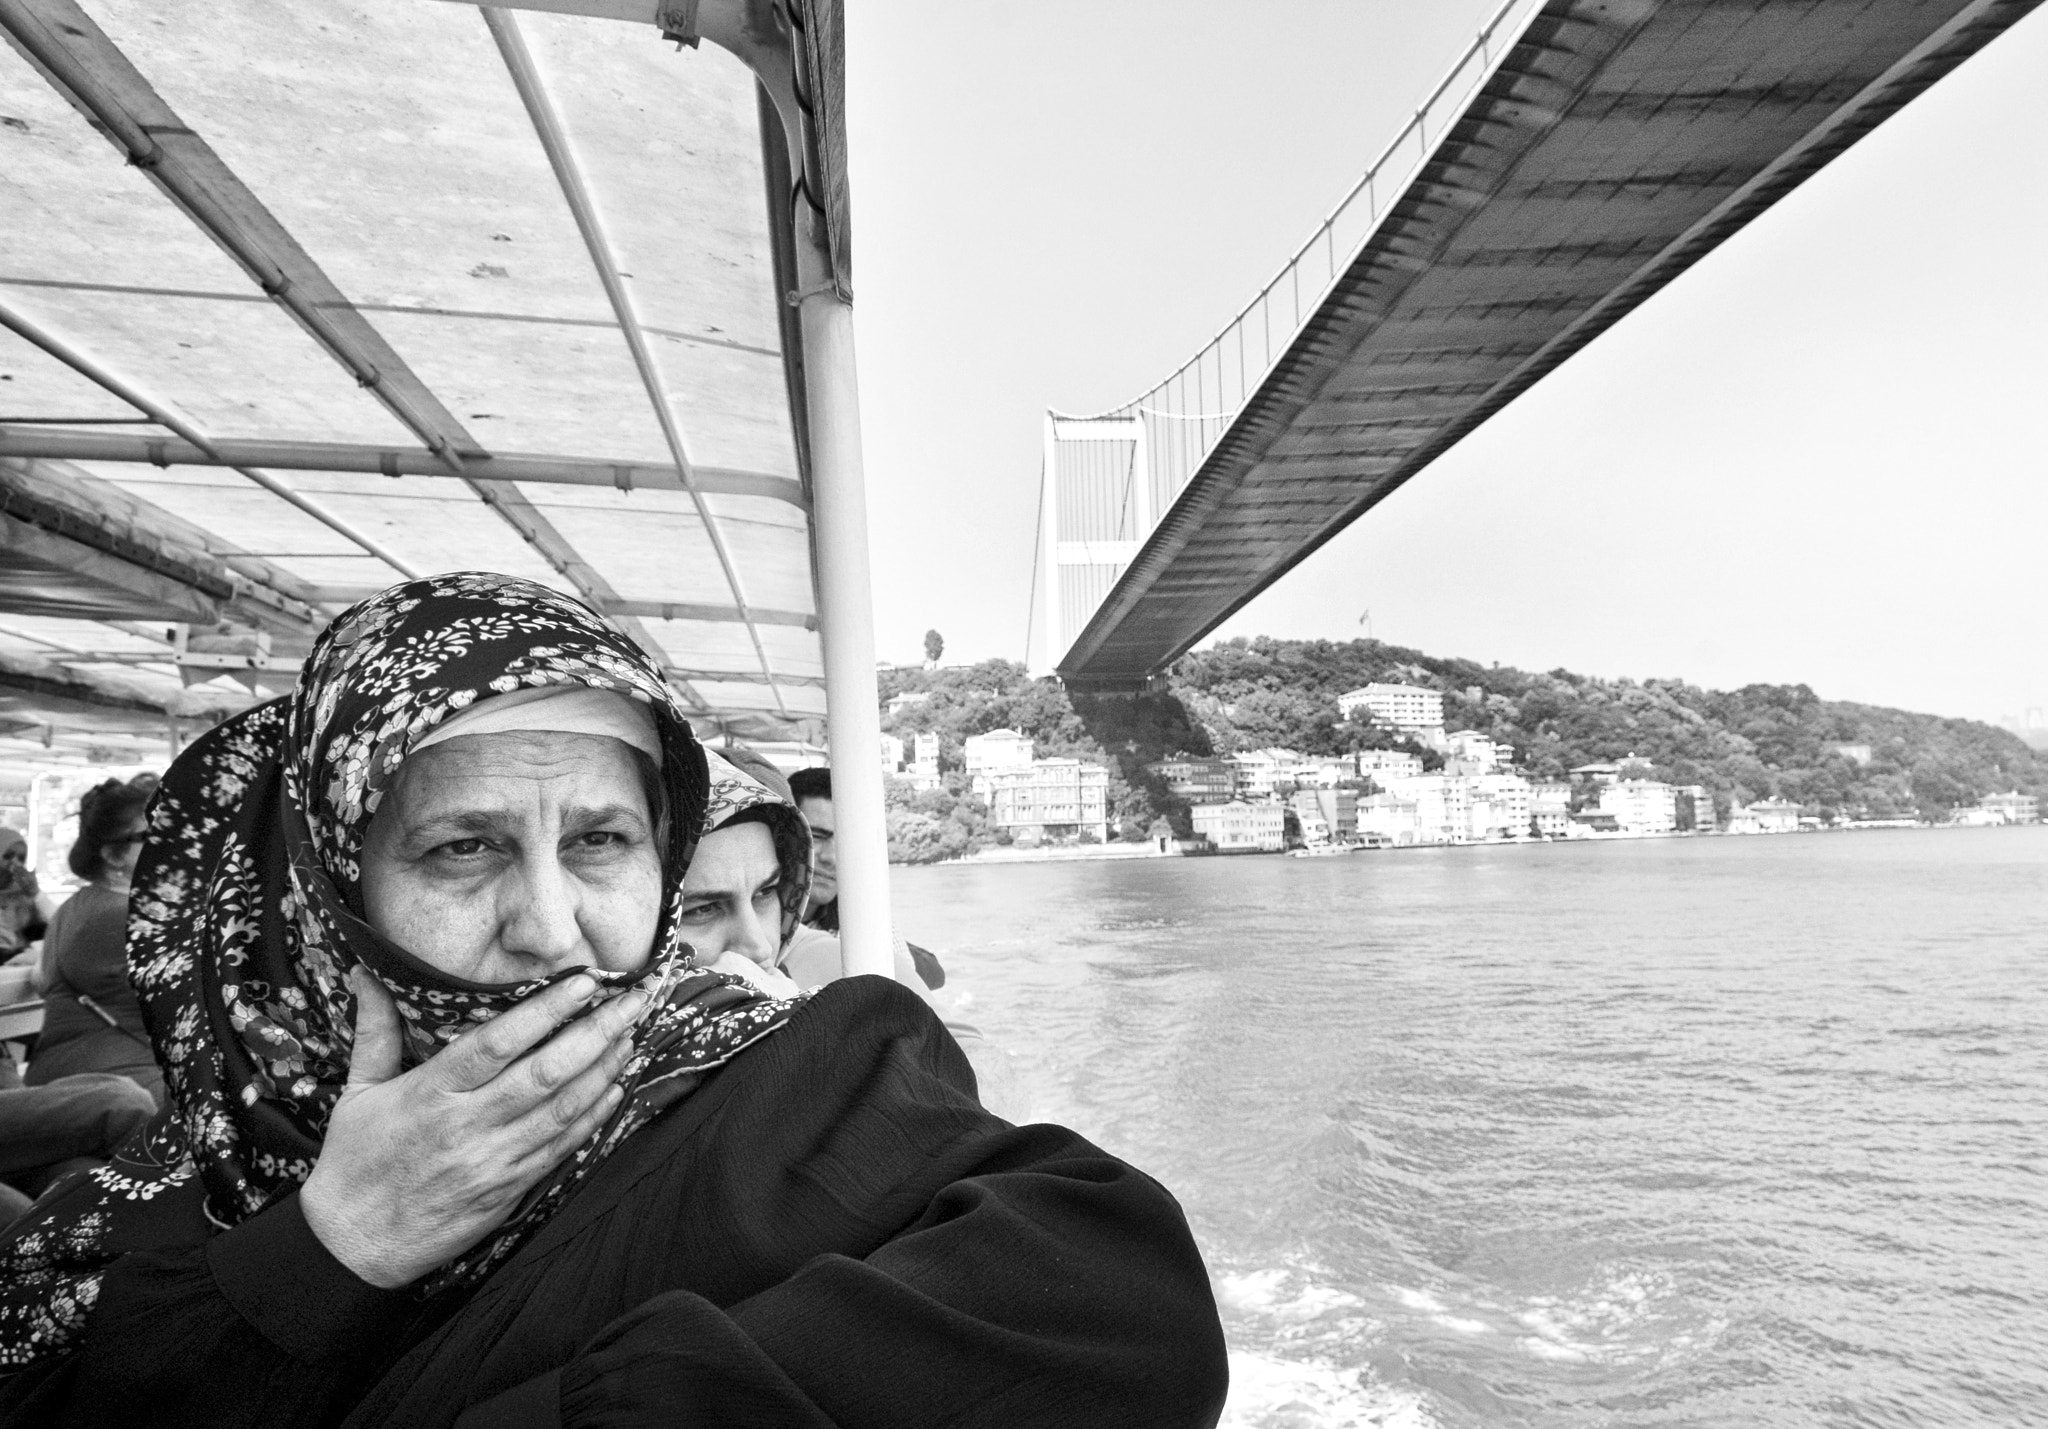 Photograph Woman at the Bosphorus by Ayush Bhandari on 500px